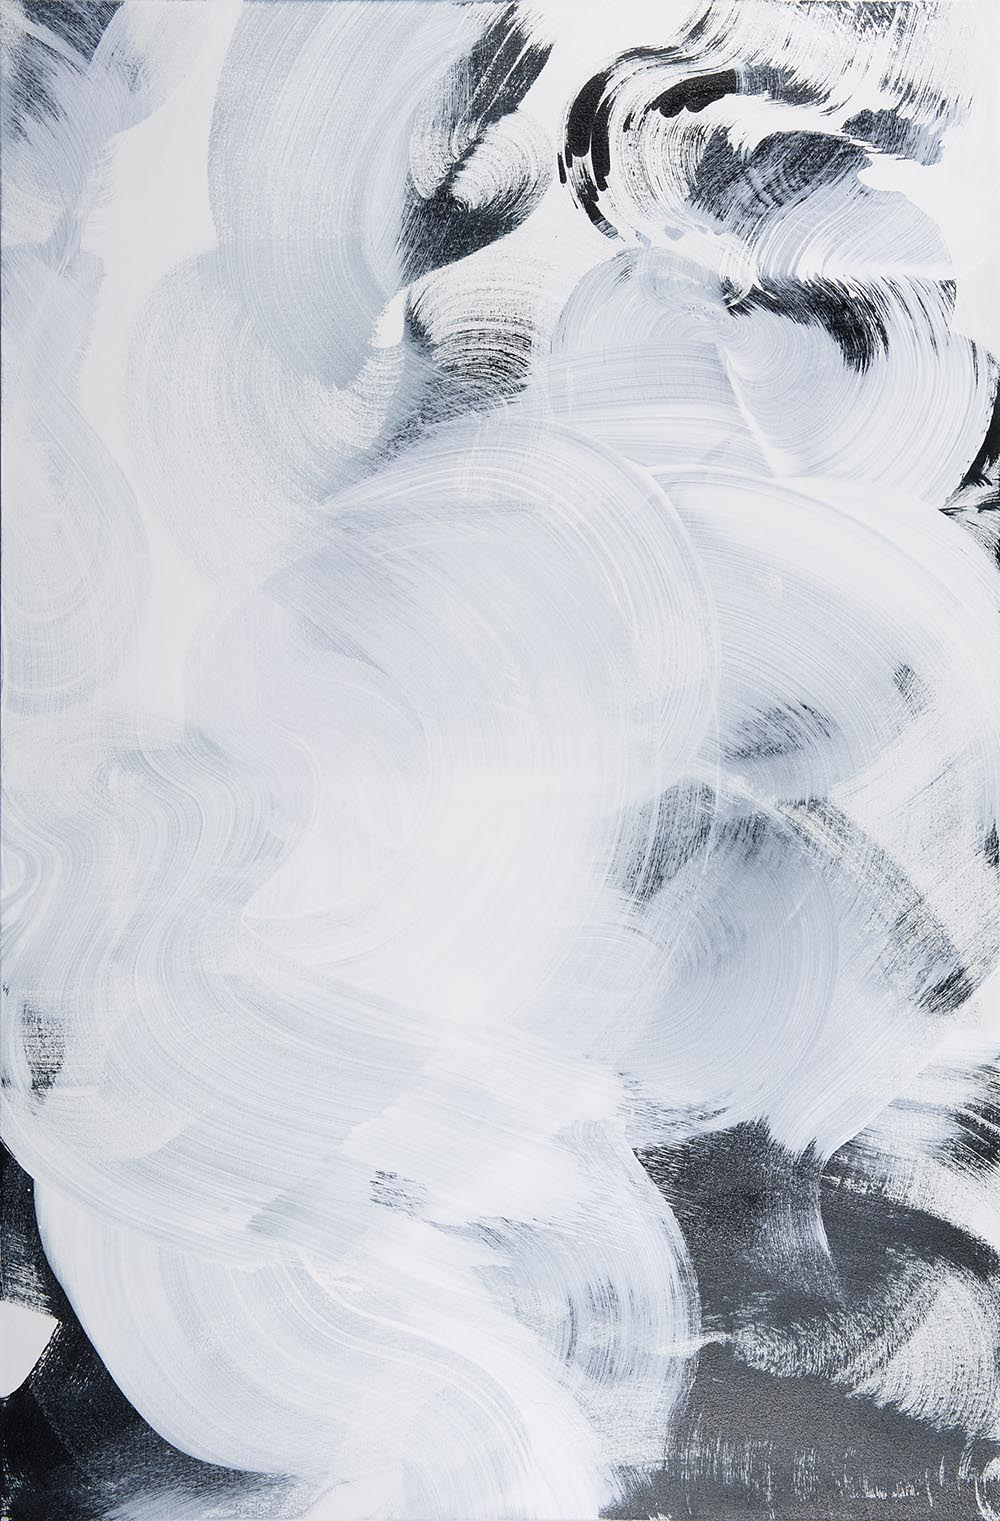 Andrea McCuaig Prelude to zen II 2014 Acrylic on canvas 150 x 100cm